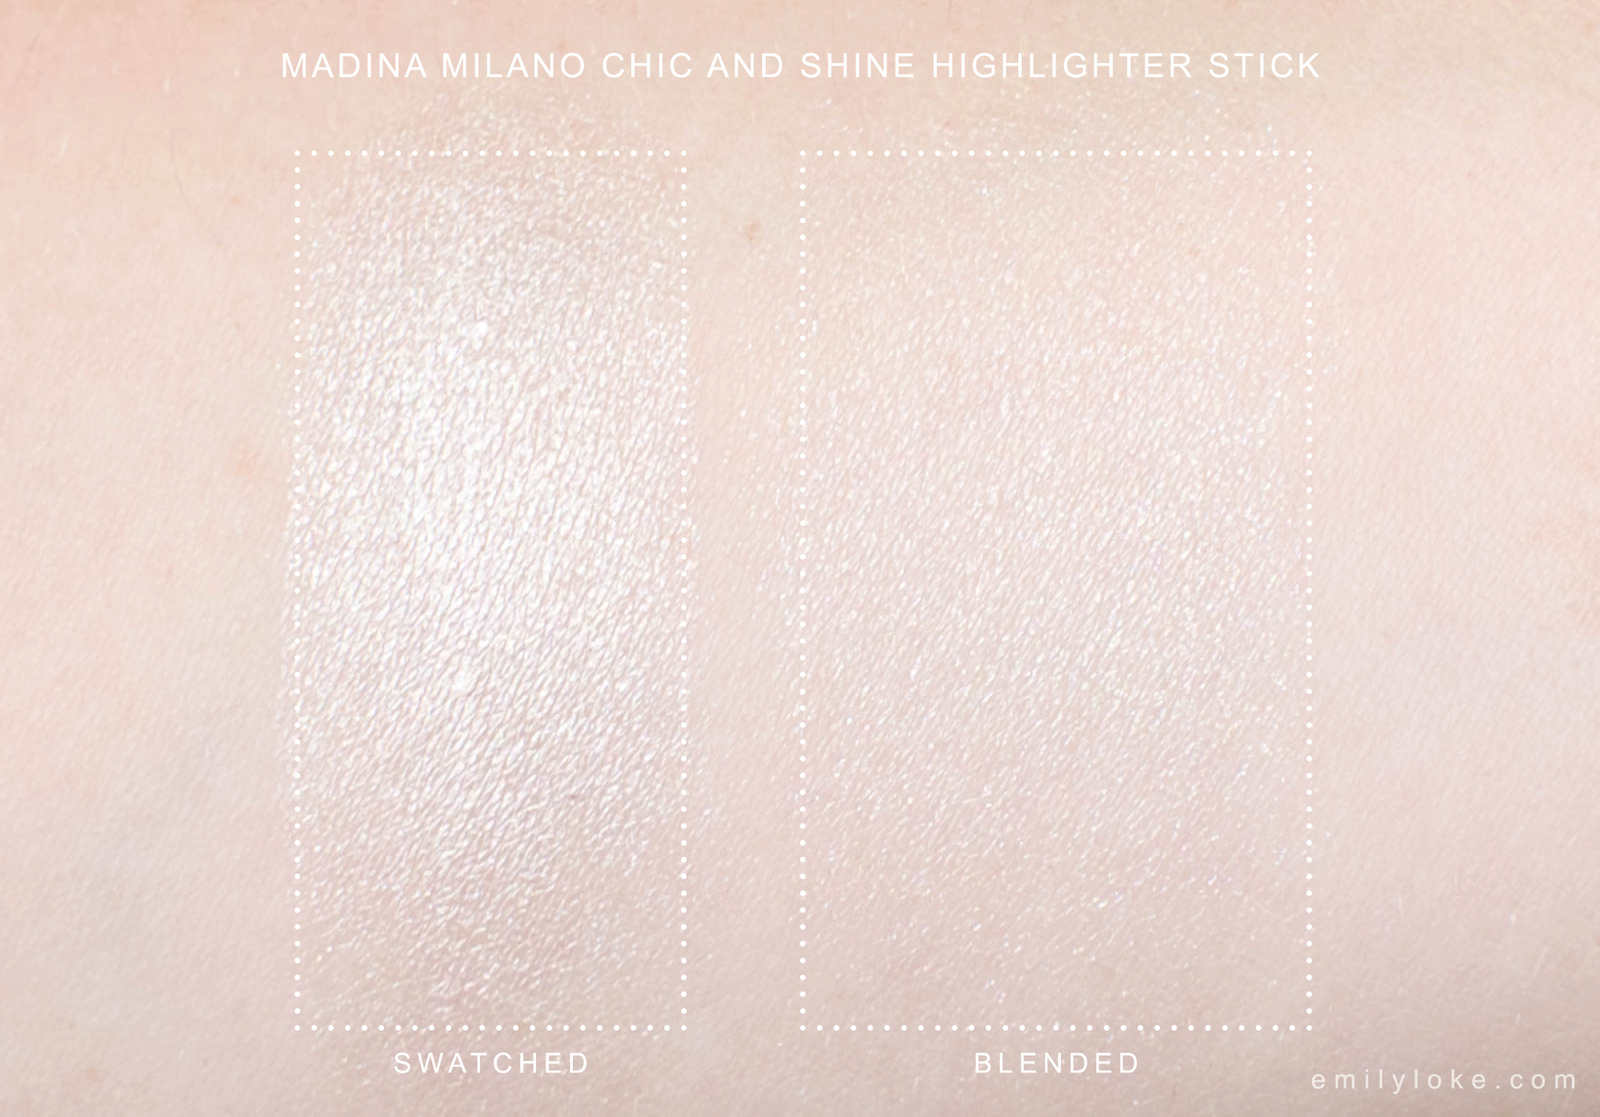 madina milano chic and shine stick 08